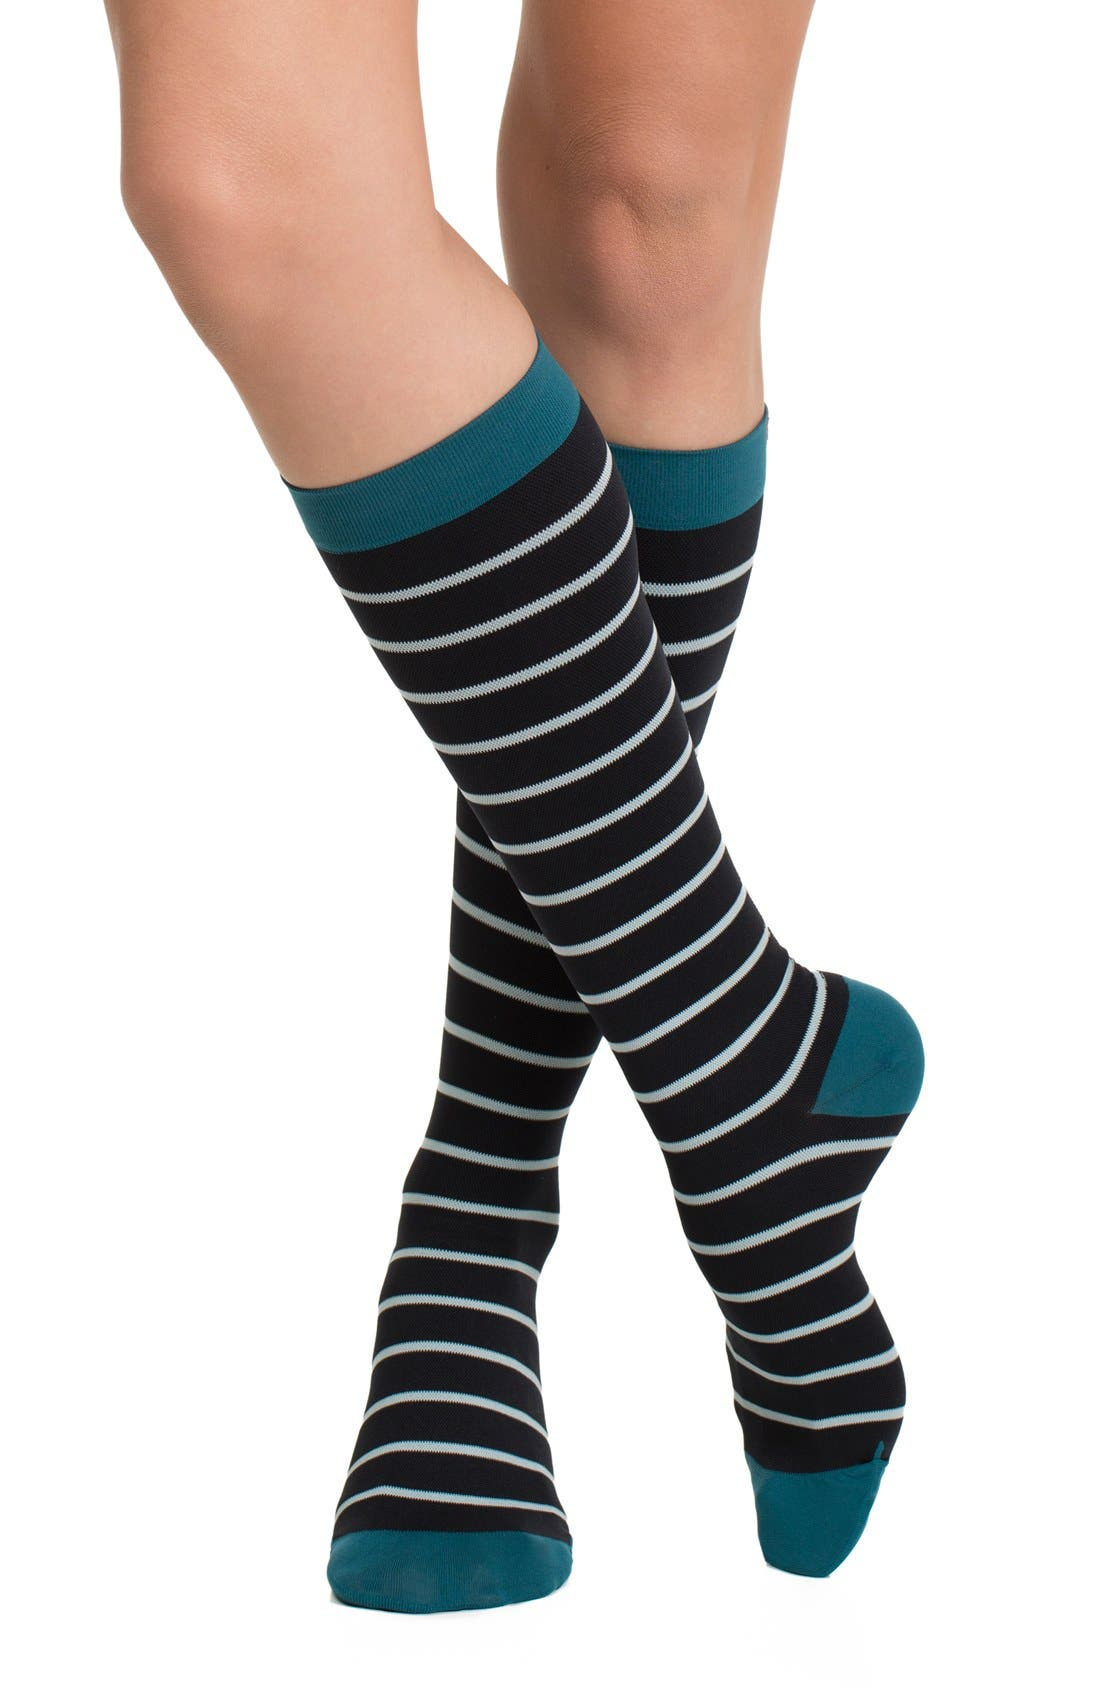 Nautical Stripe Graduated Compression Trouser Socks,                             Alternate thumbnail 5, color,                             001